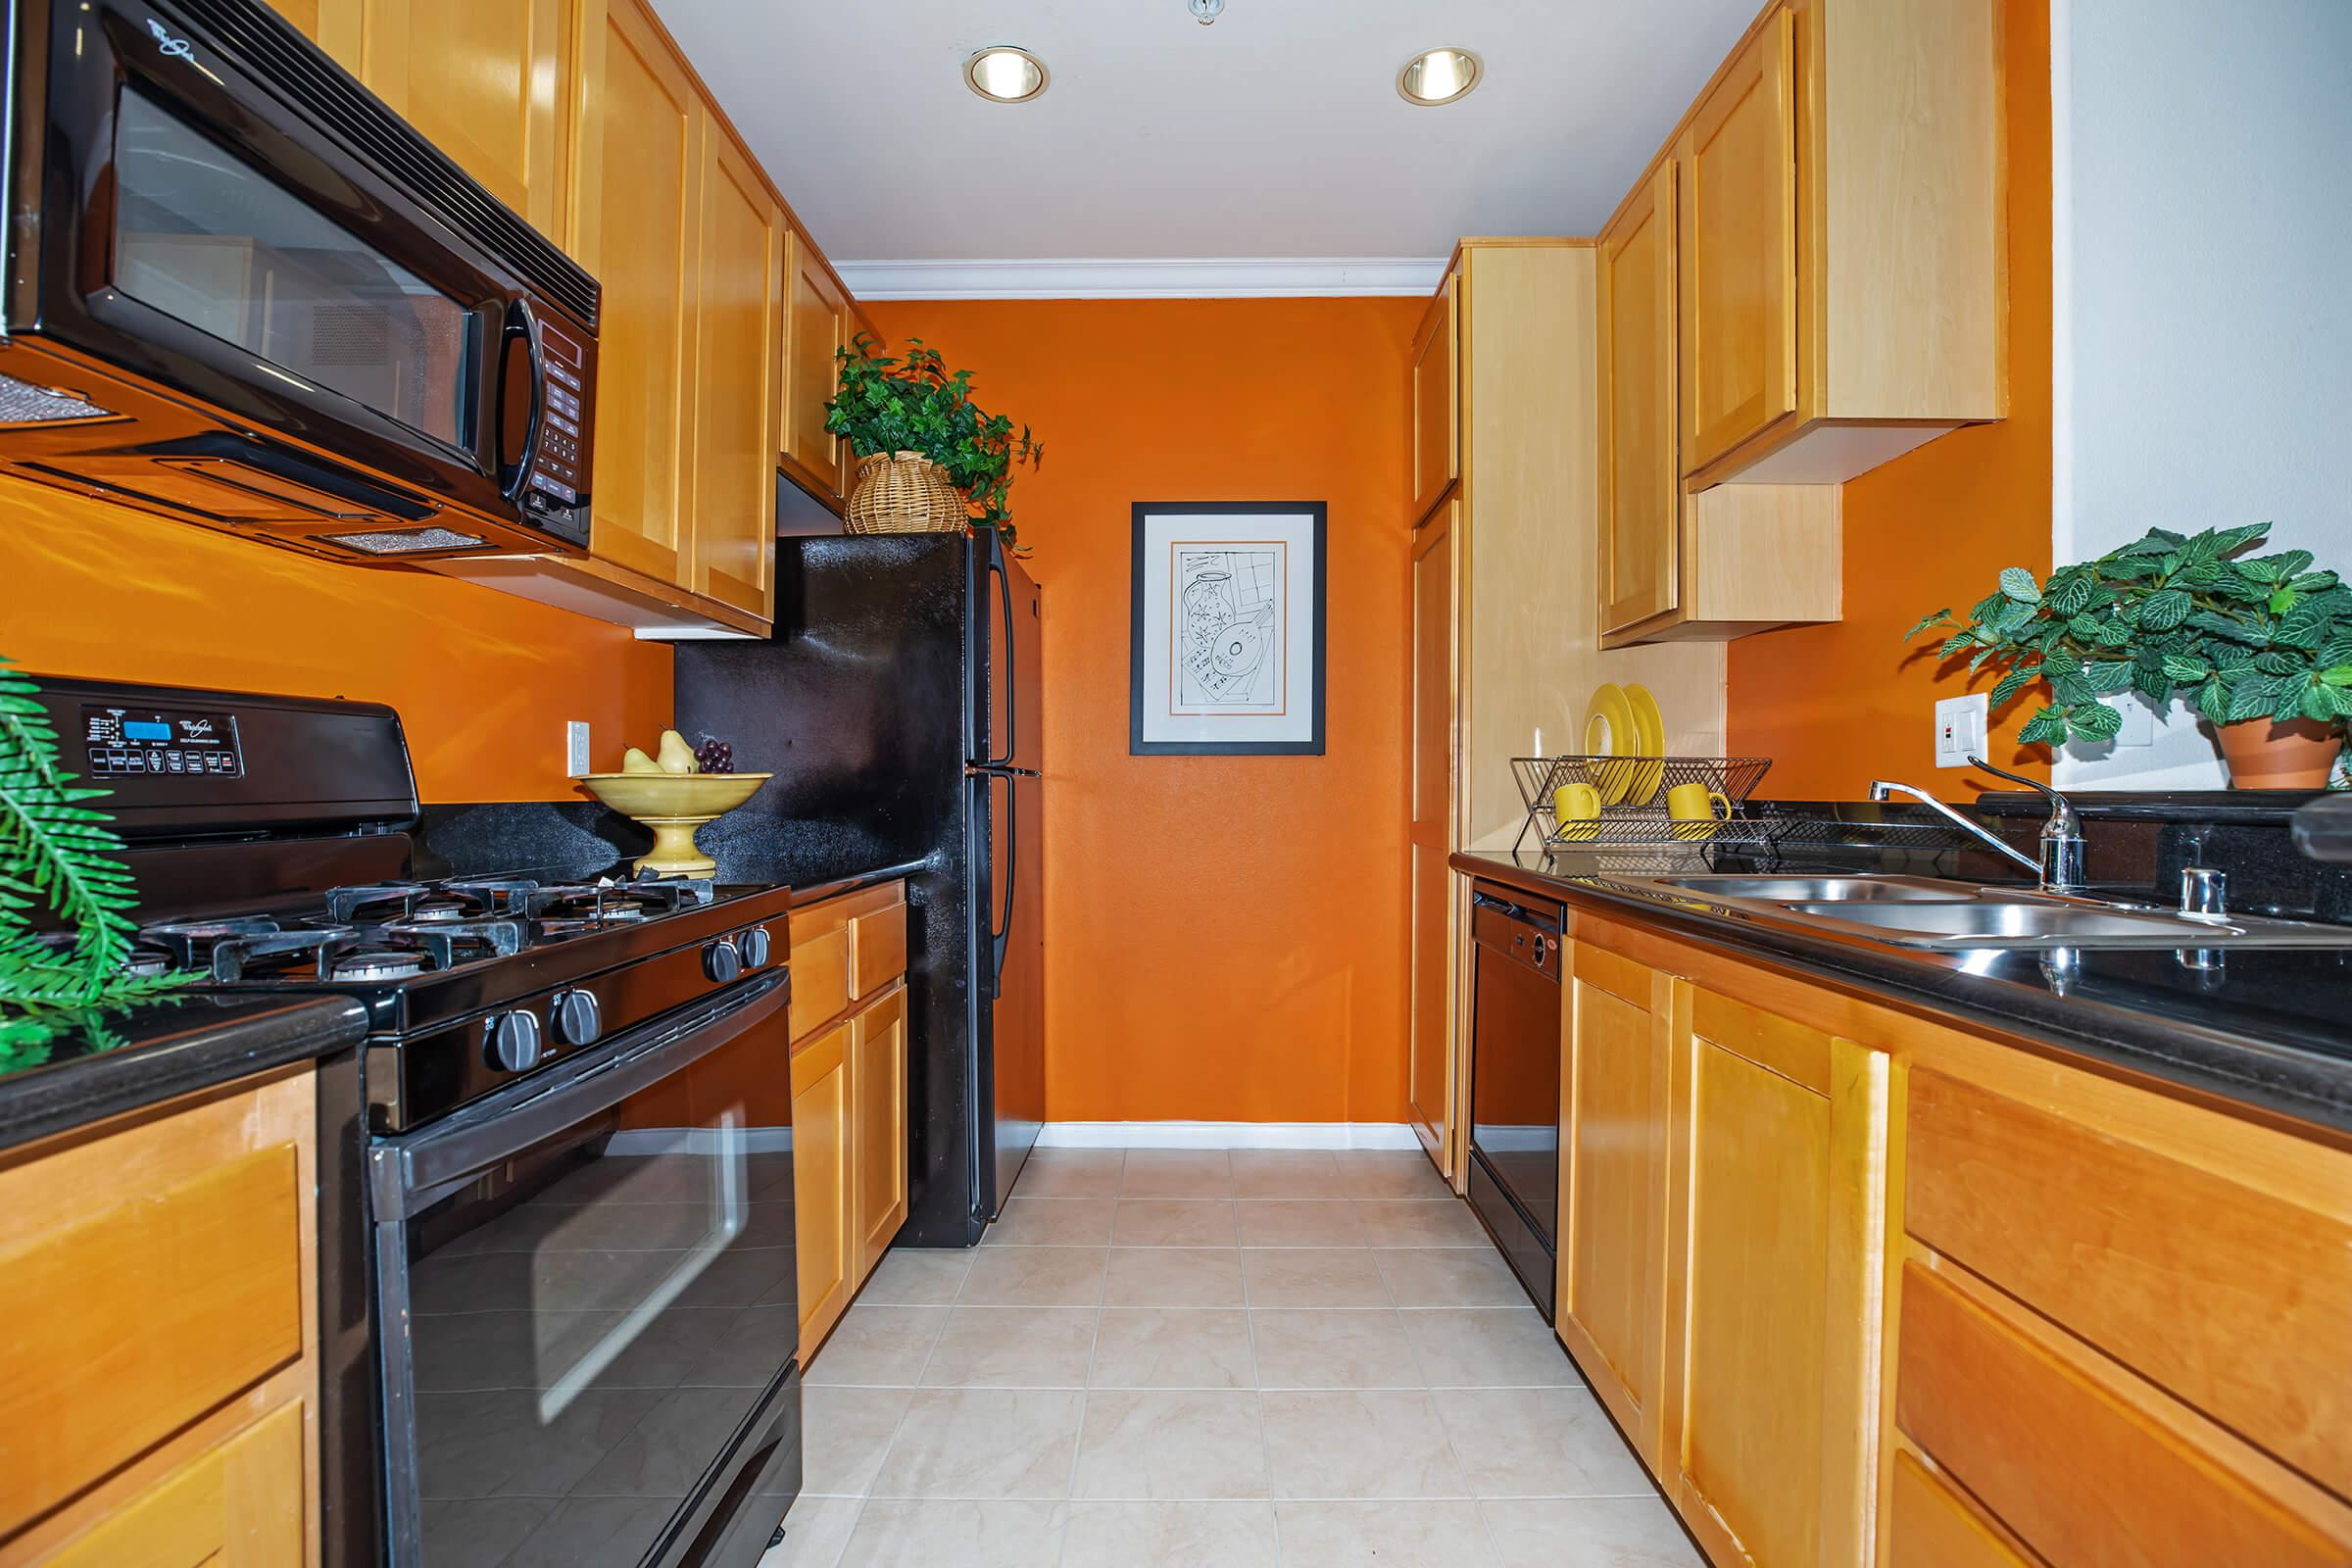 a yellow kitchen with black counter tops